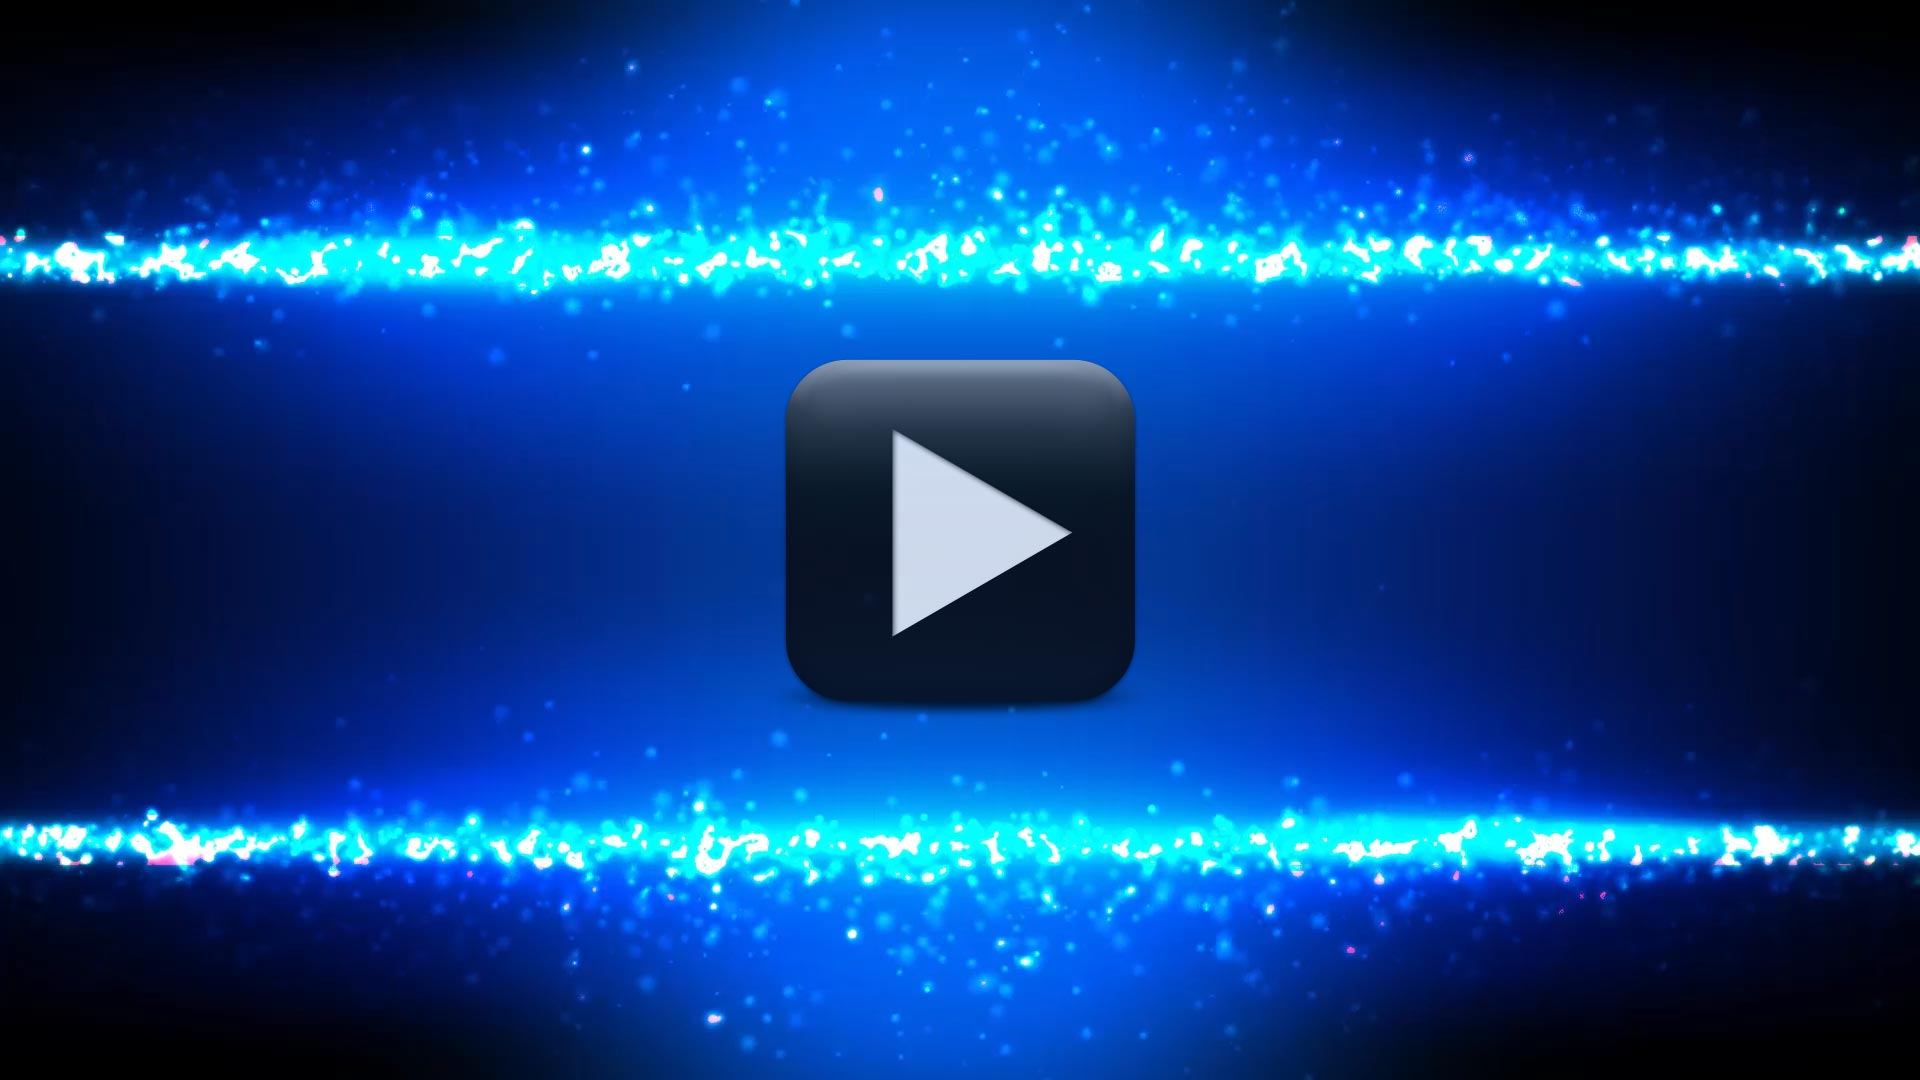 Title Motion Video in Blue Background